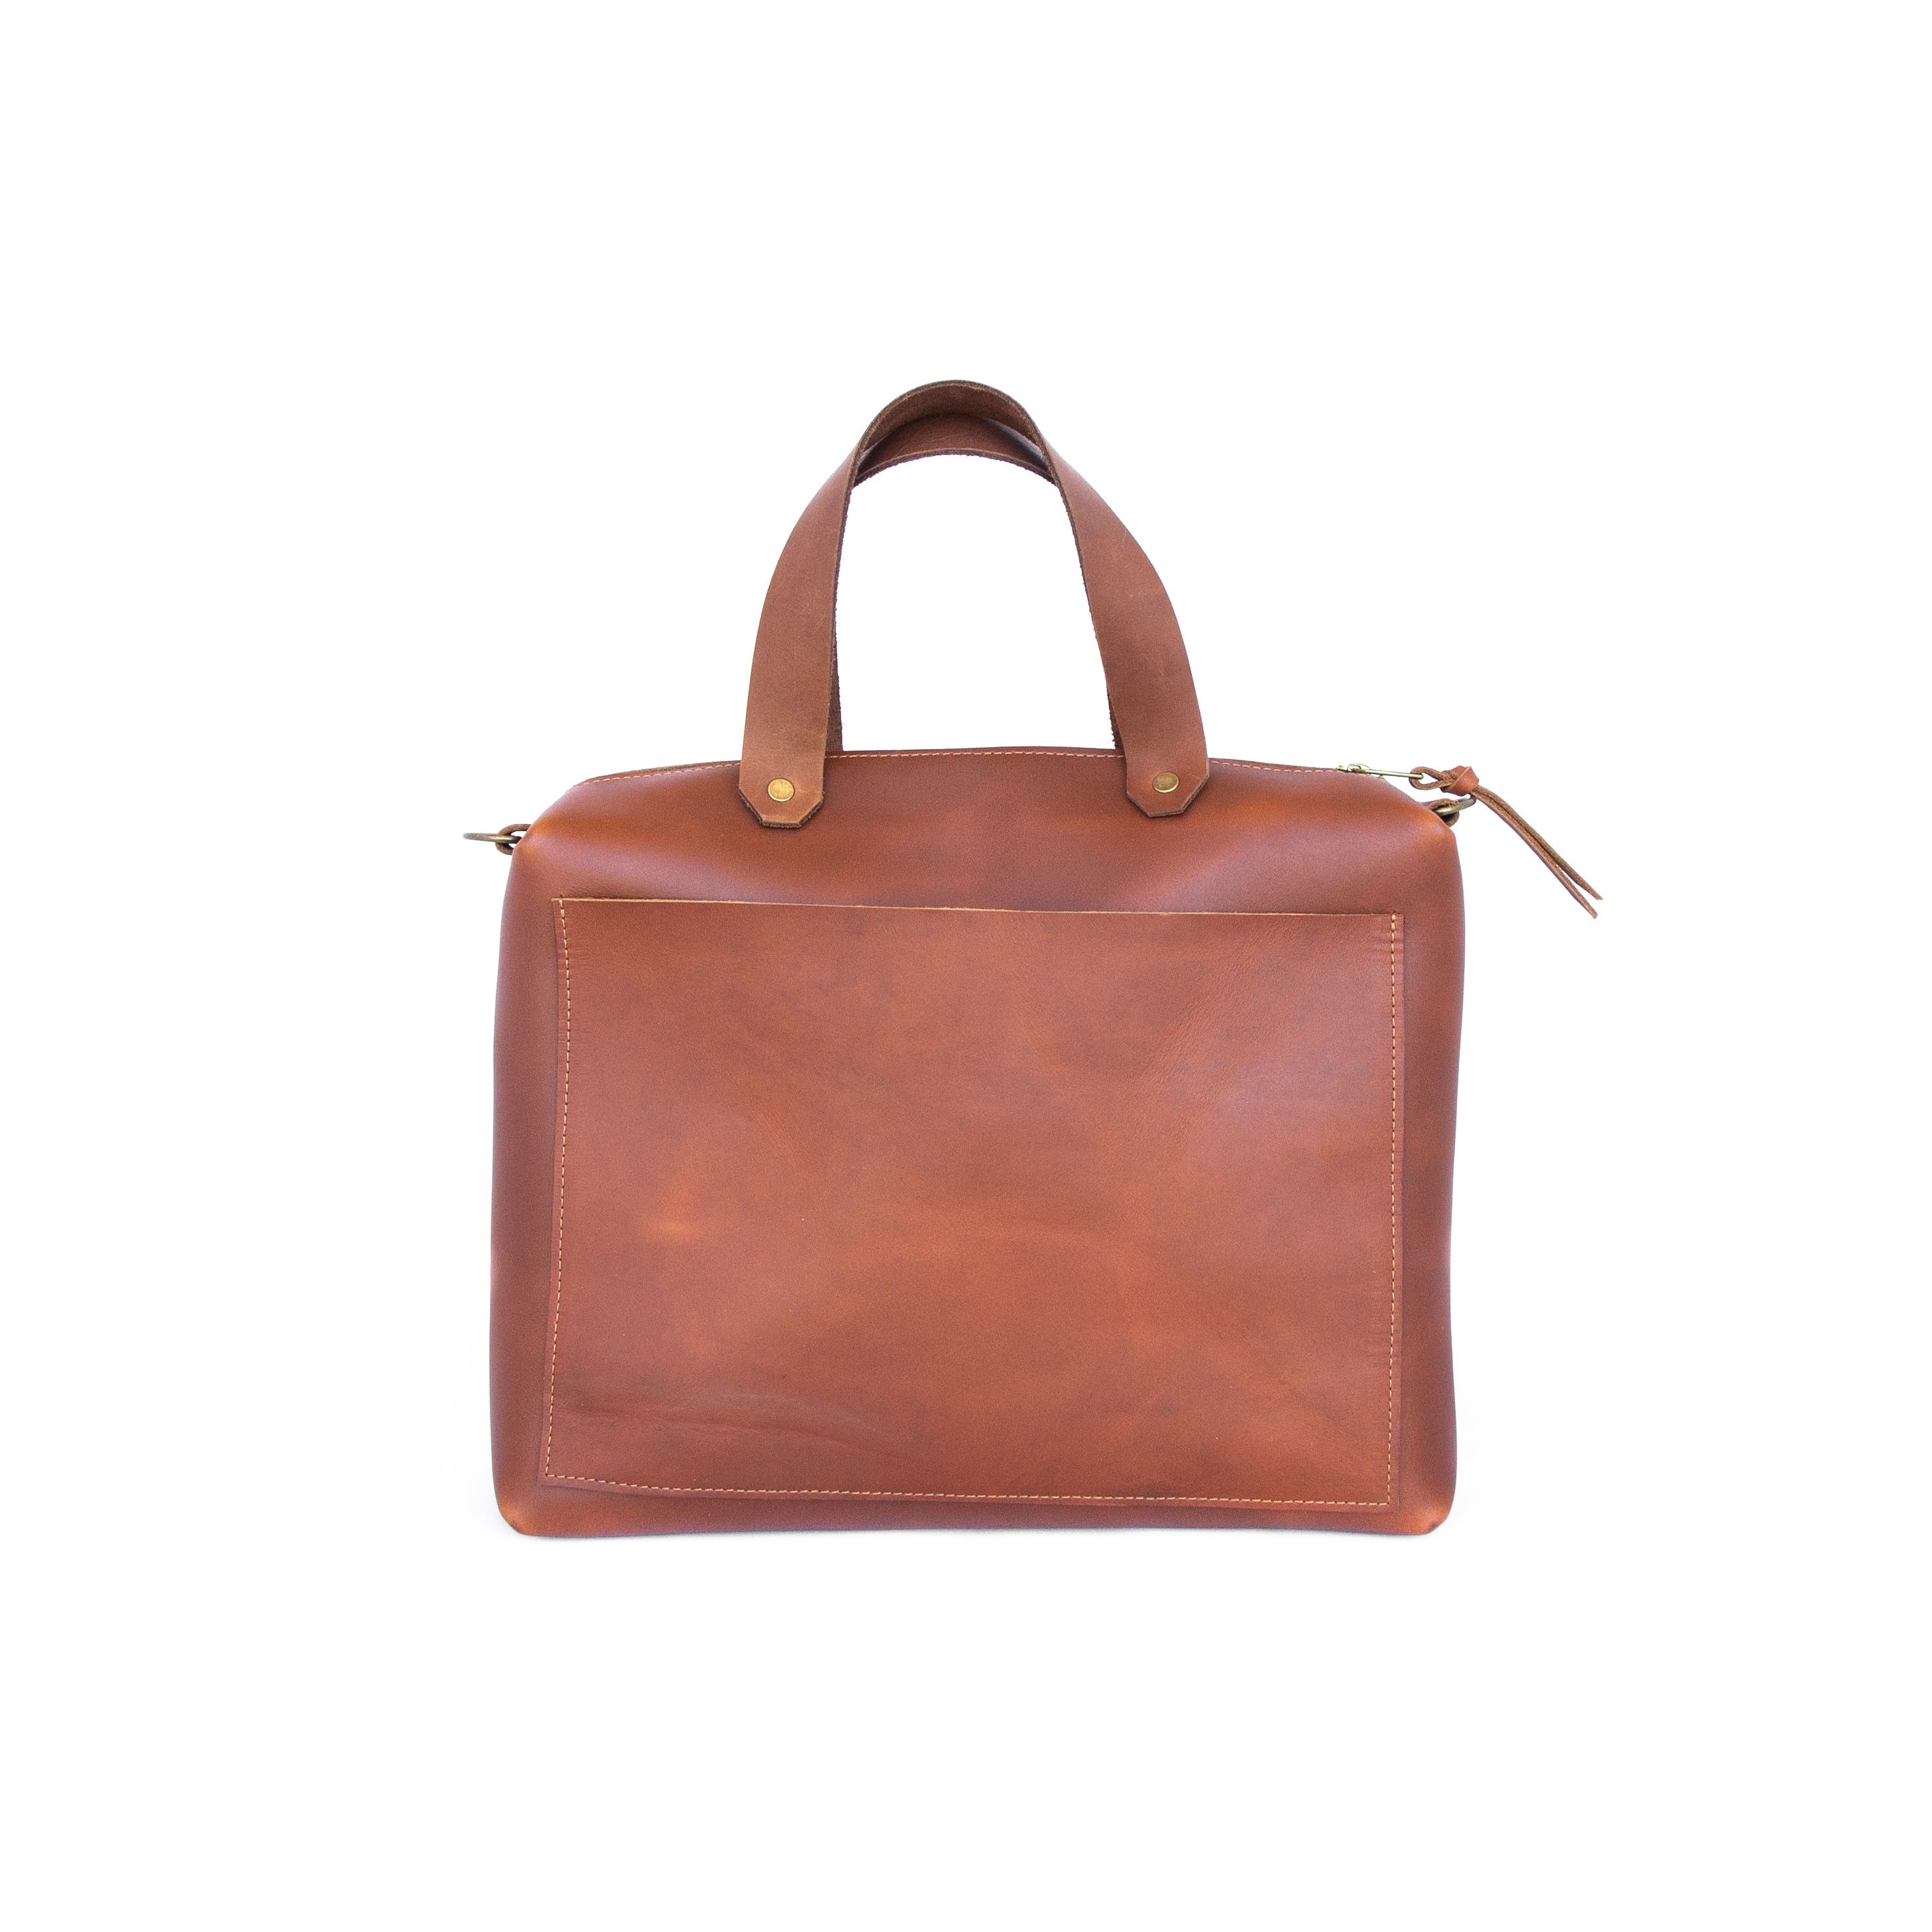 Spy Bag In Cognac Leather - handcrafted by Market Canvas Leather in Tofino, BC, Canada